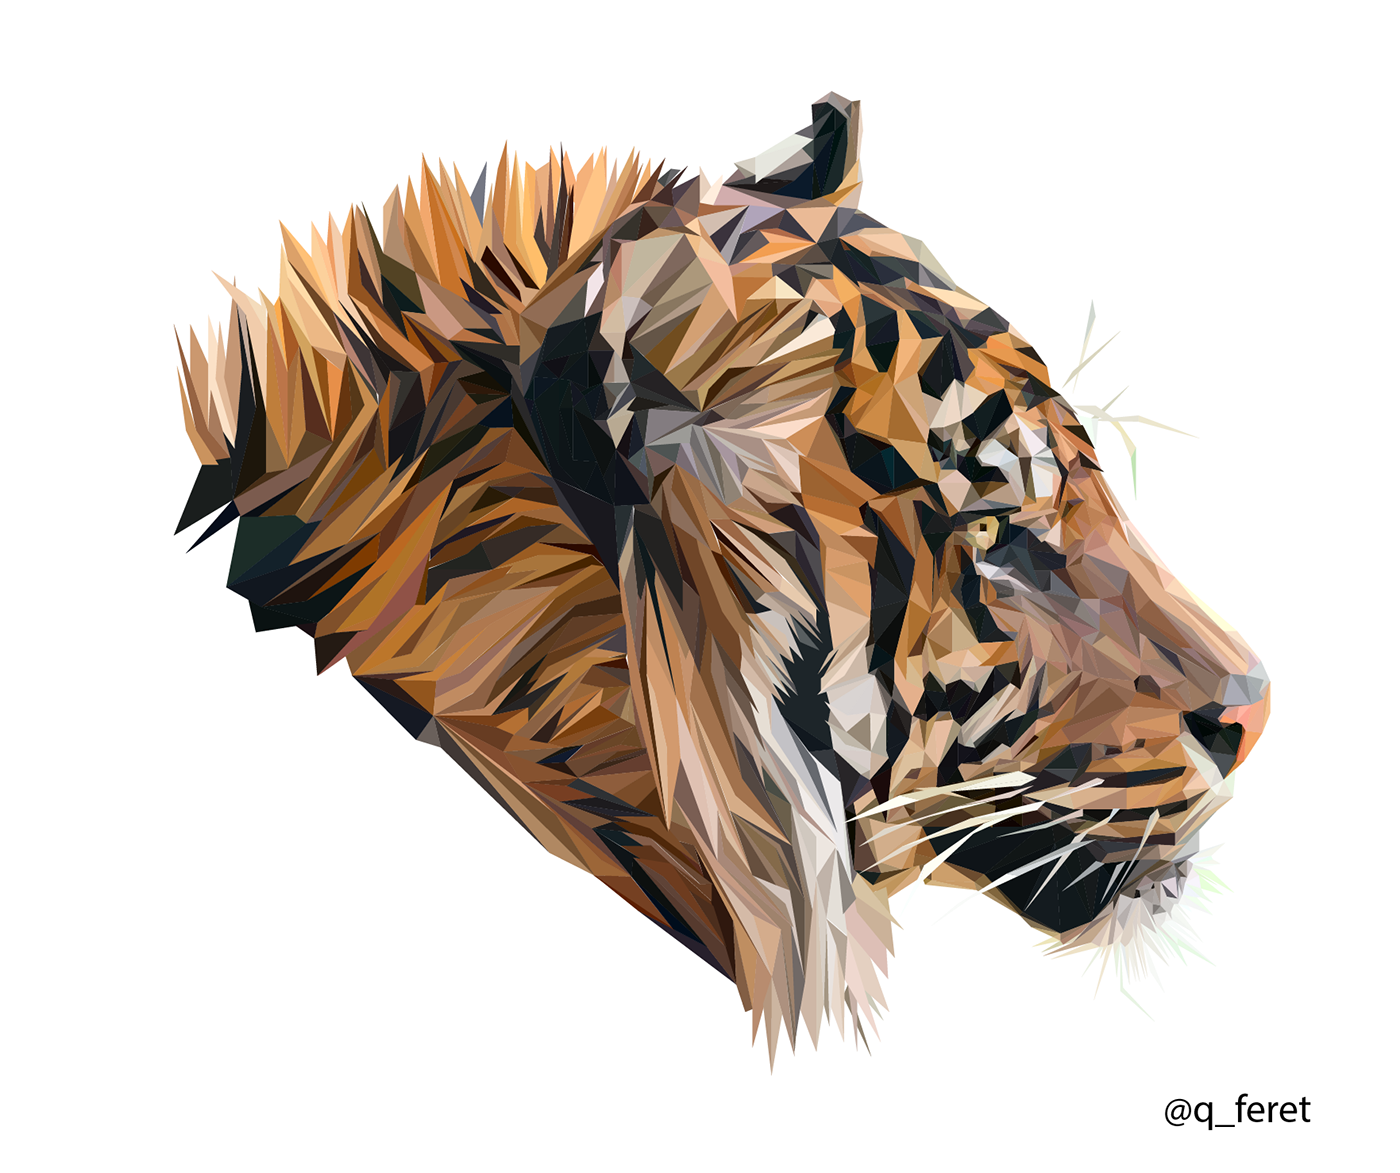 Polygons drawing tiger. Digital low poly on